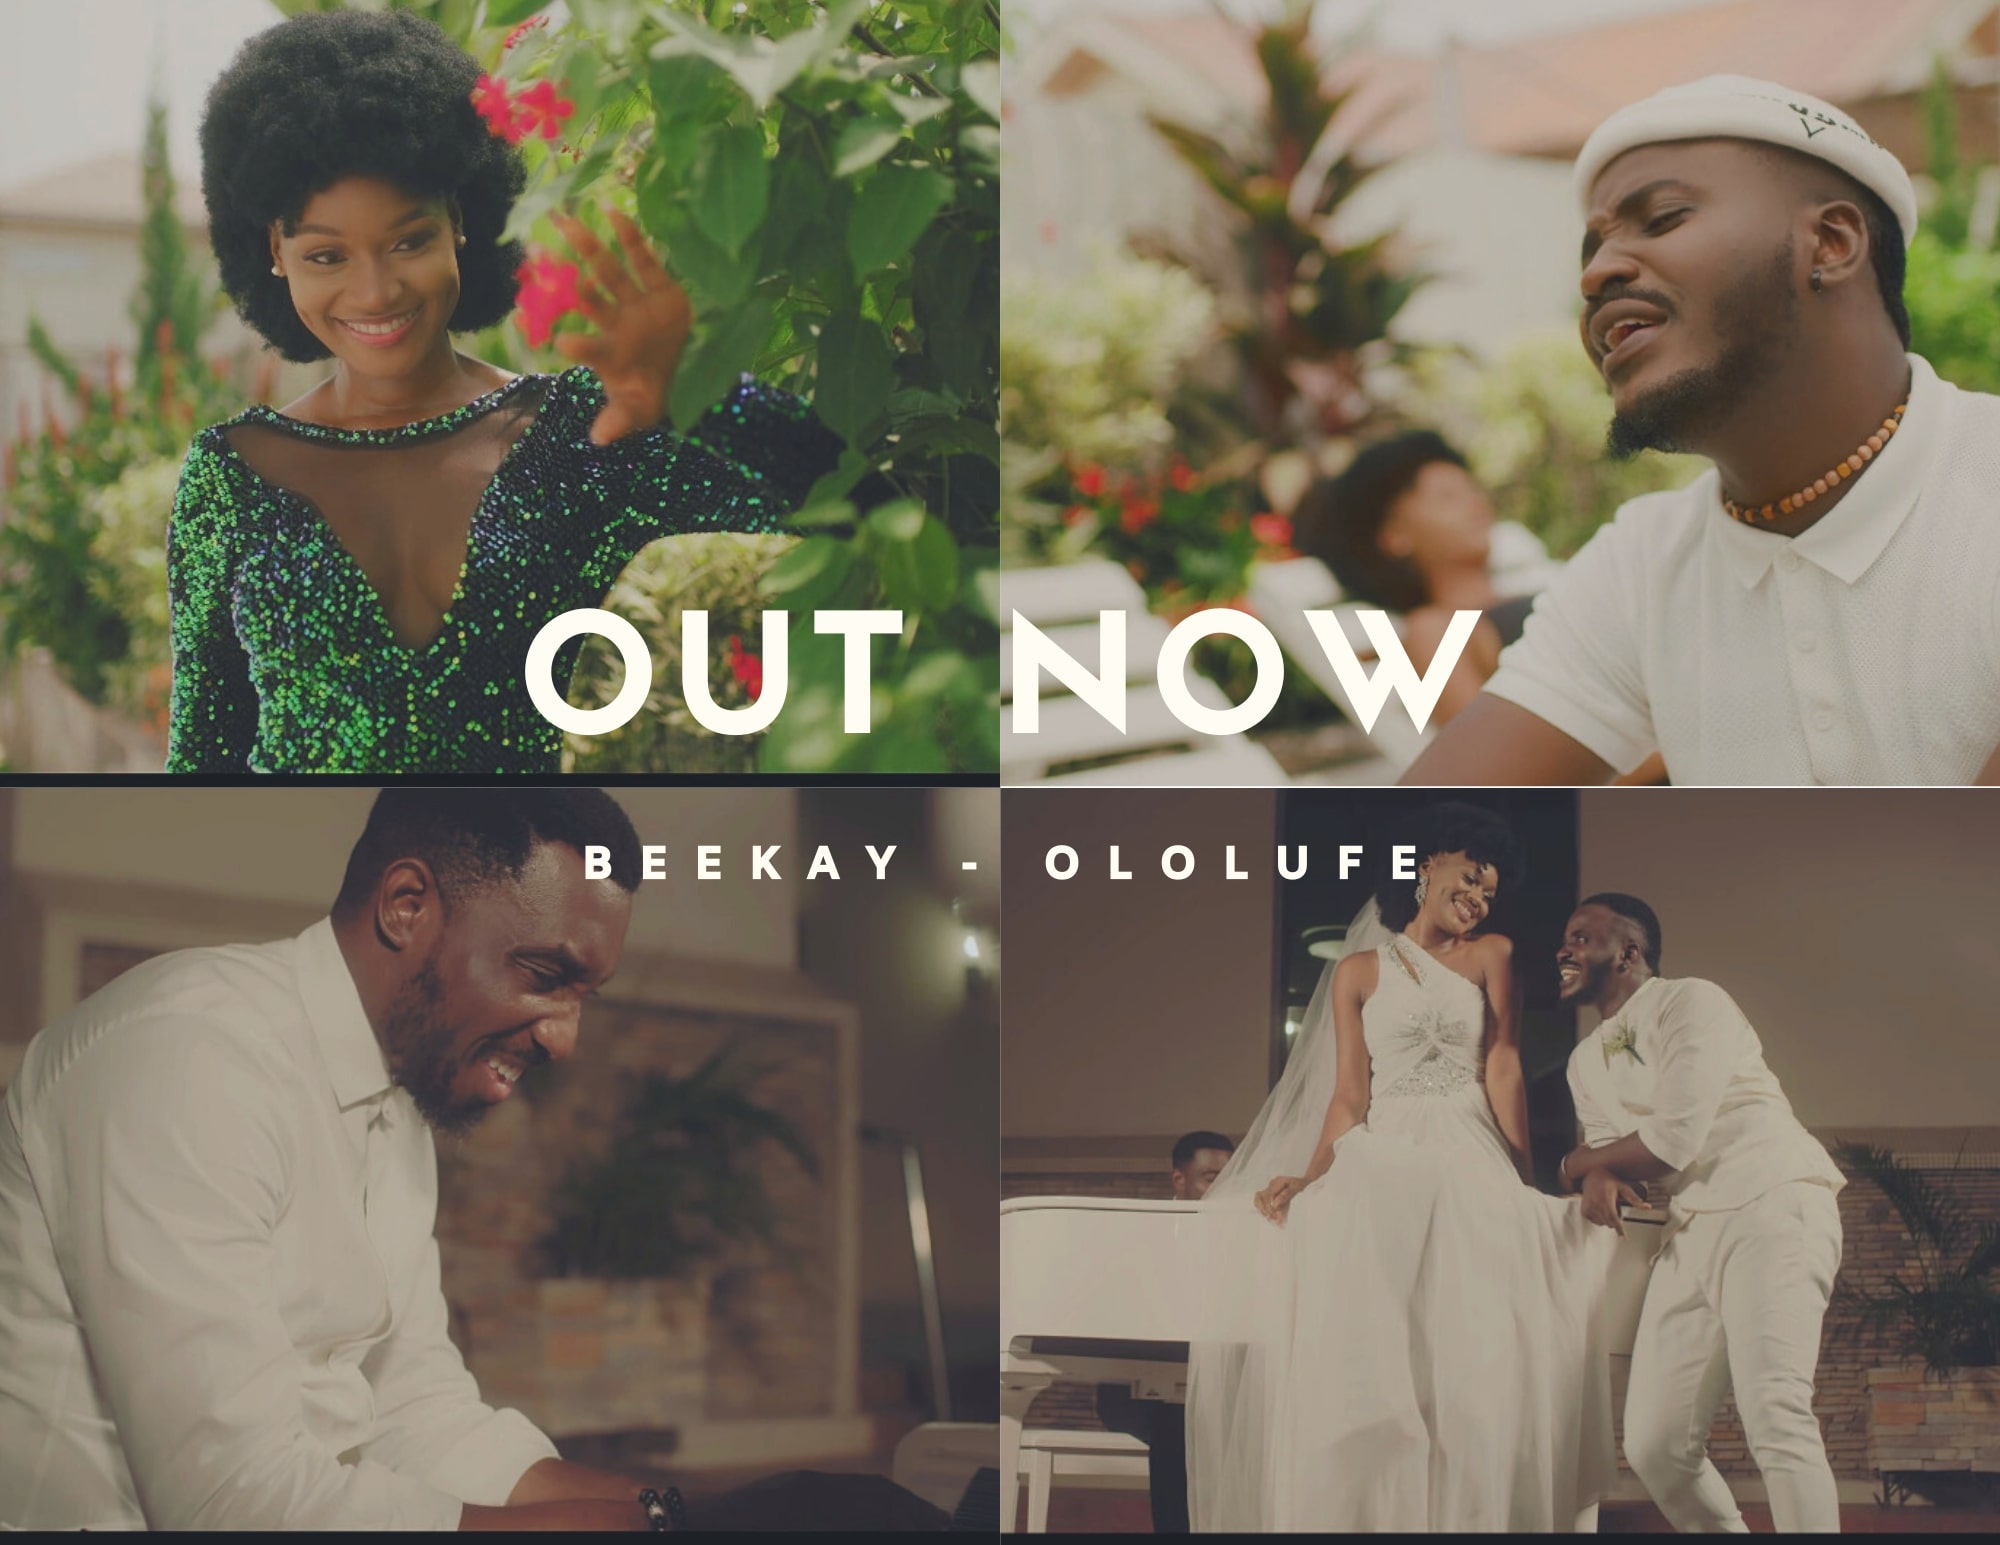 VIDEO: Beekay - Ololufe